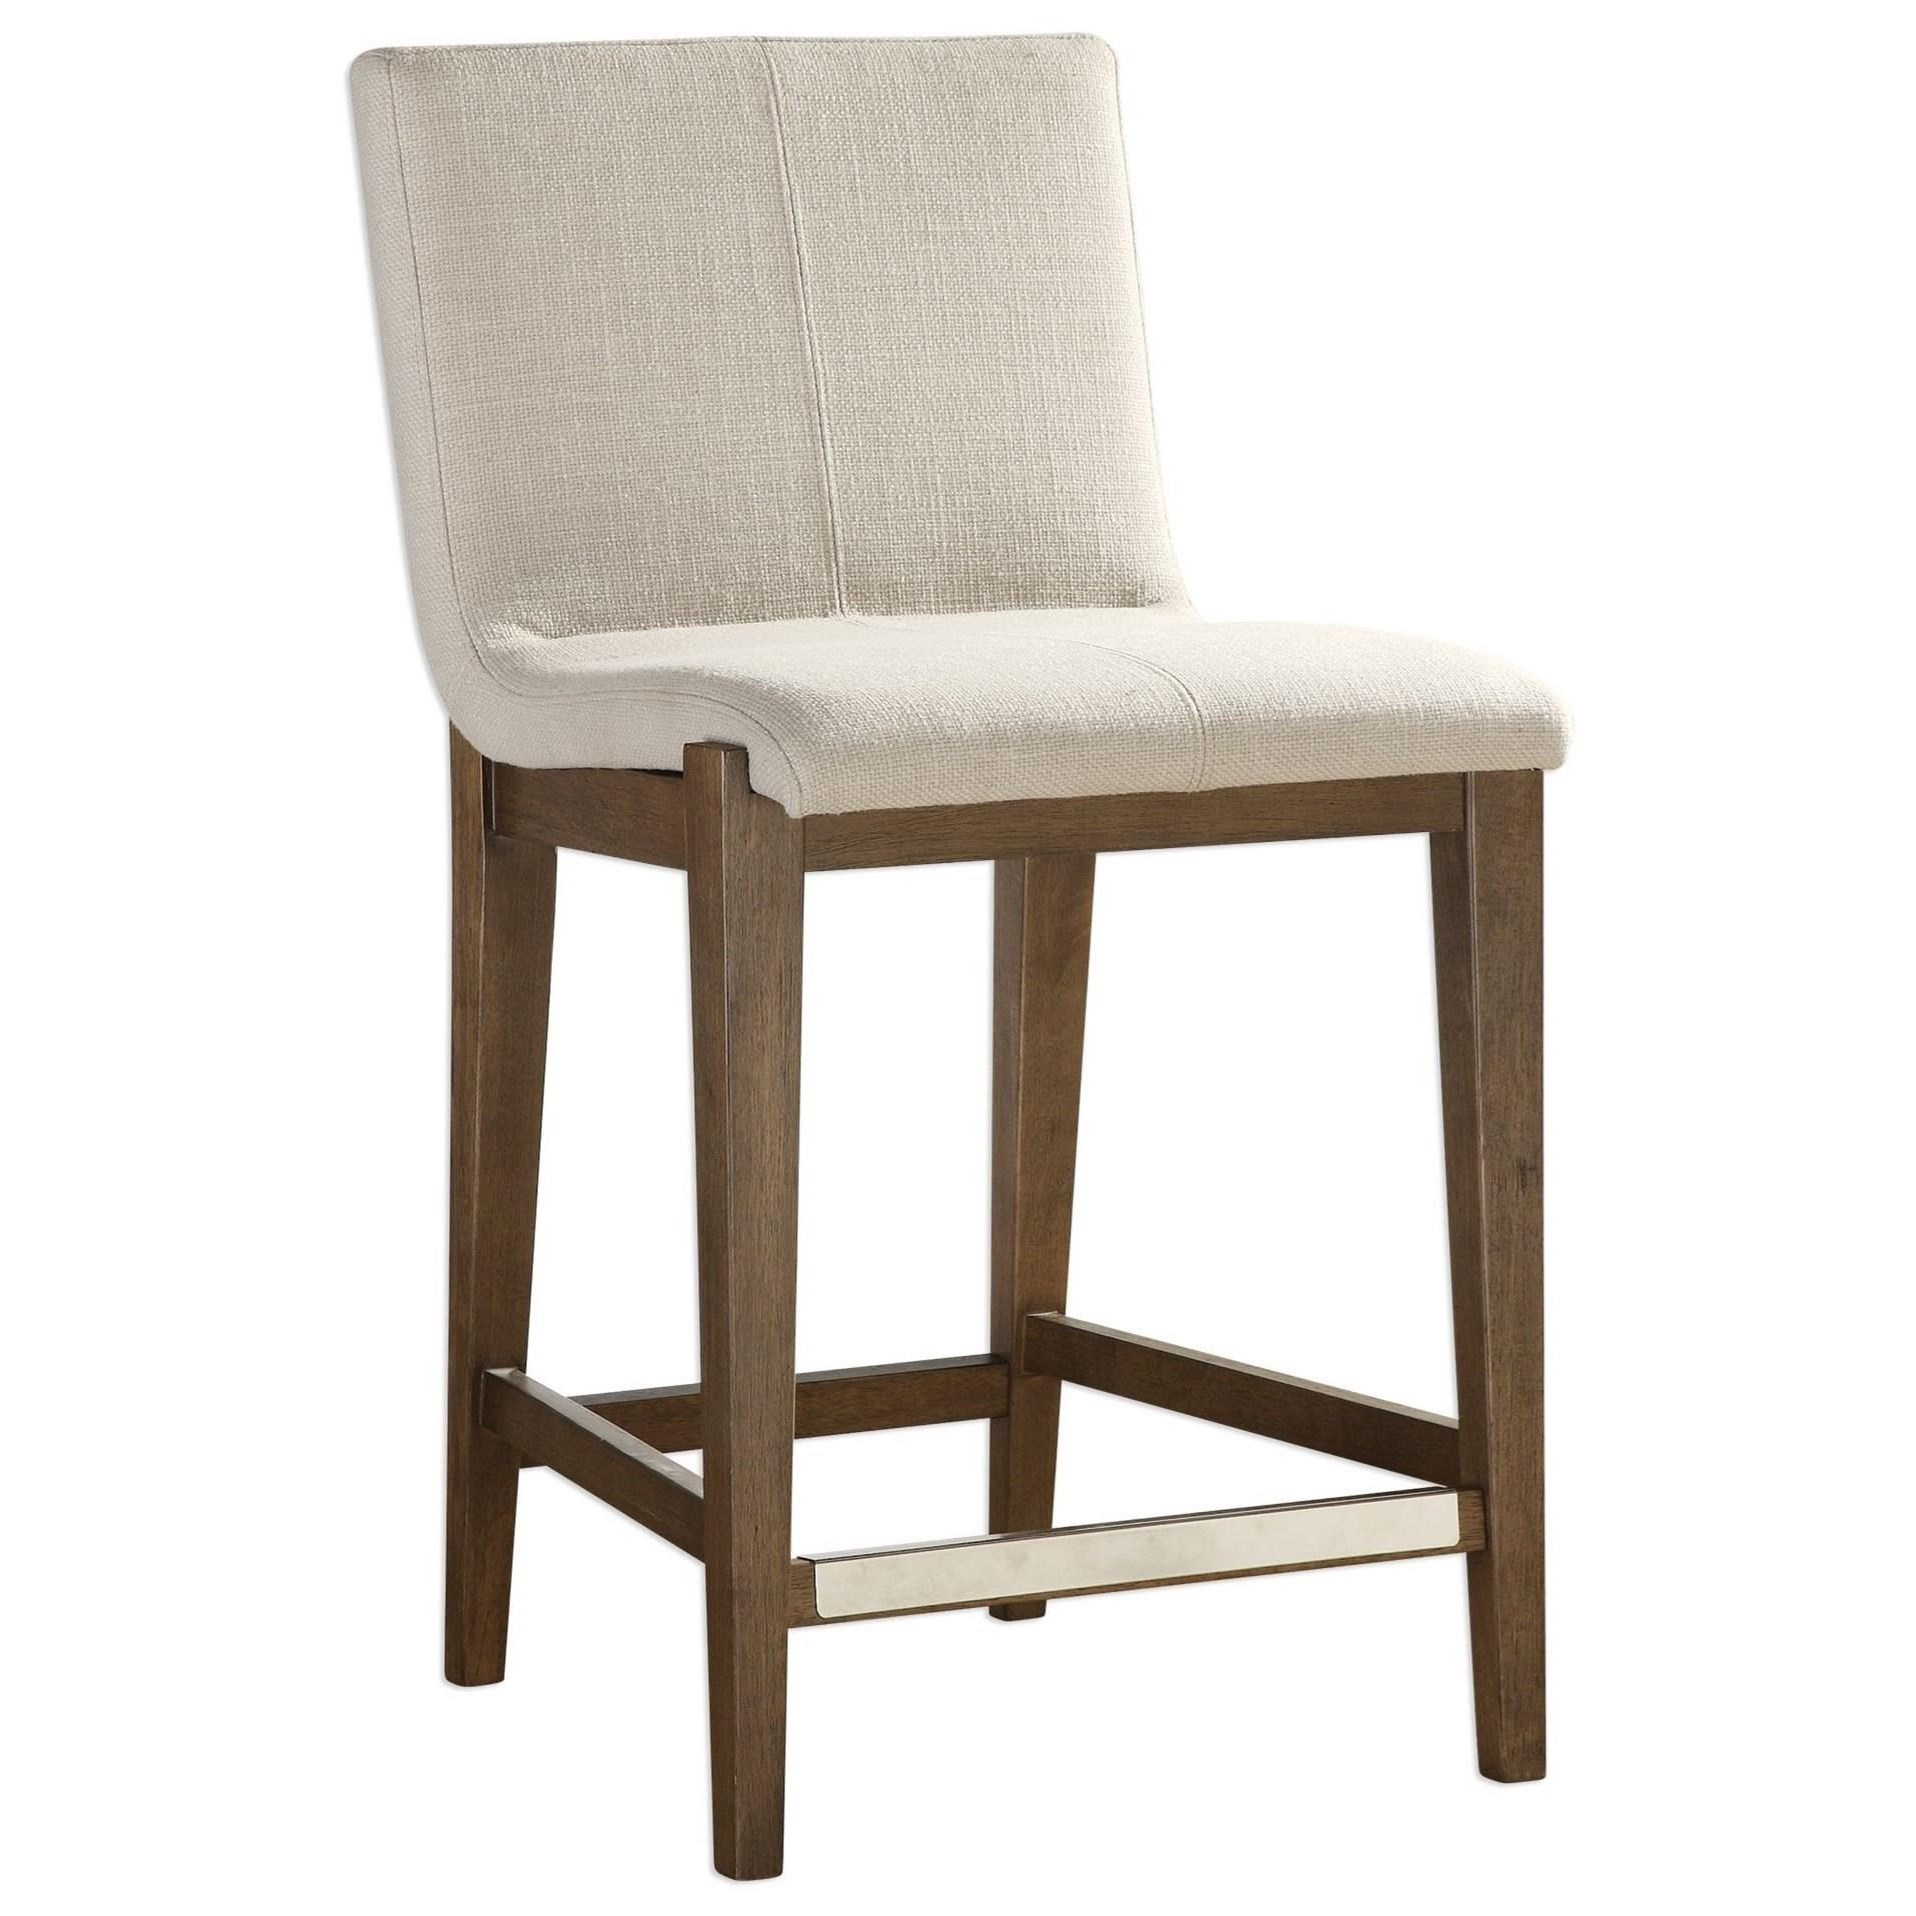 Accent Furniture - Stools Klemens Linen Counter Stool by Uttermost at Del Sol Furniture